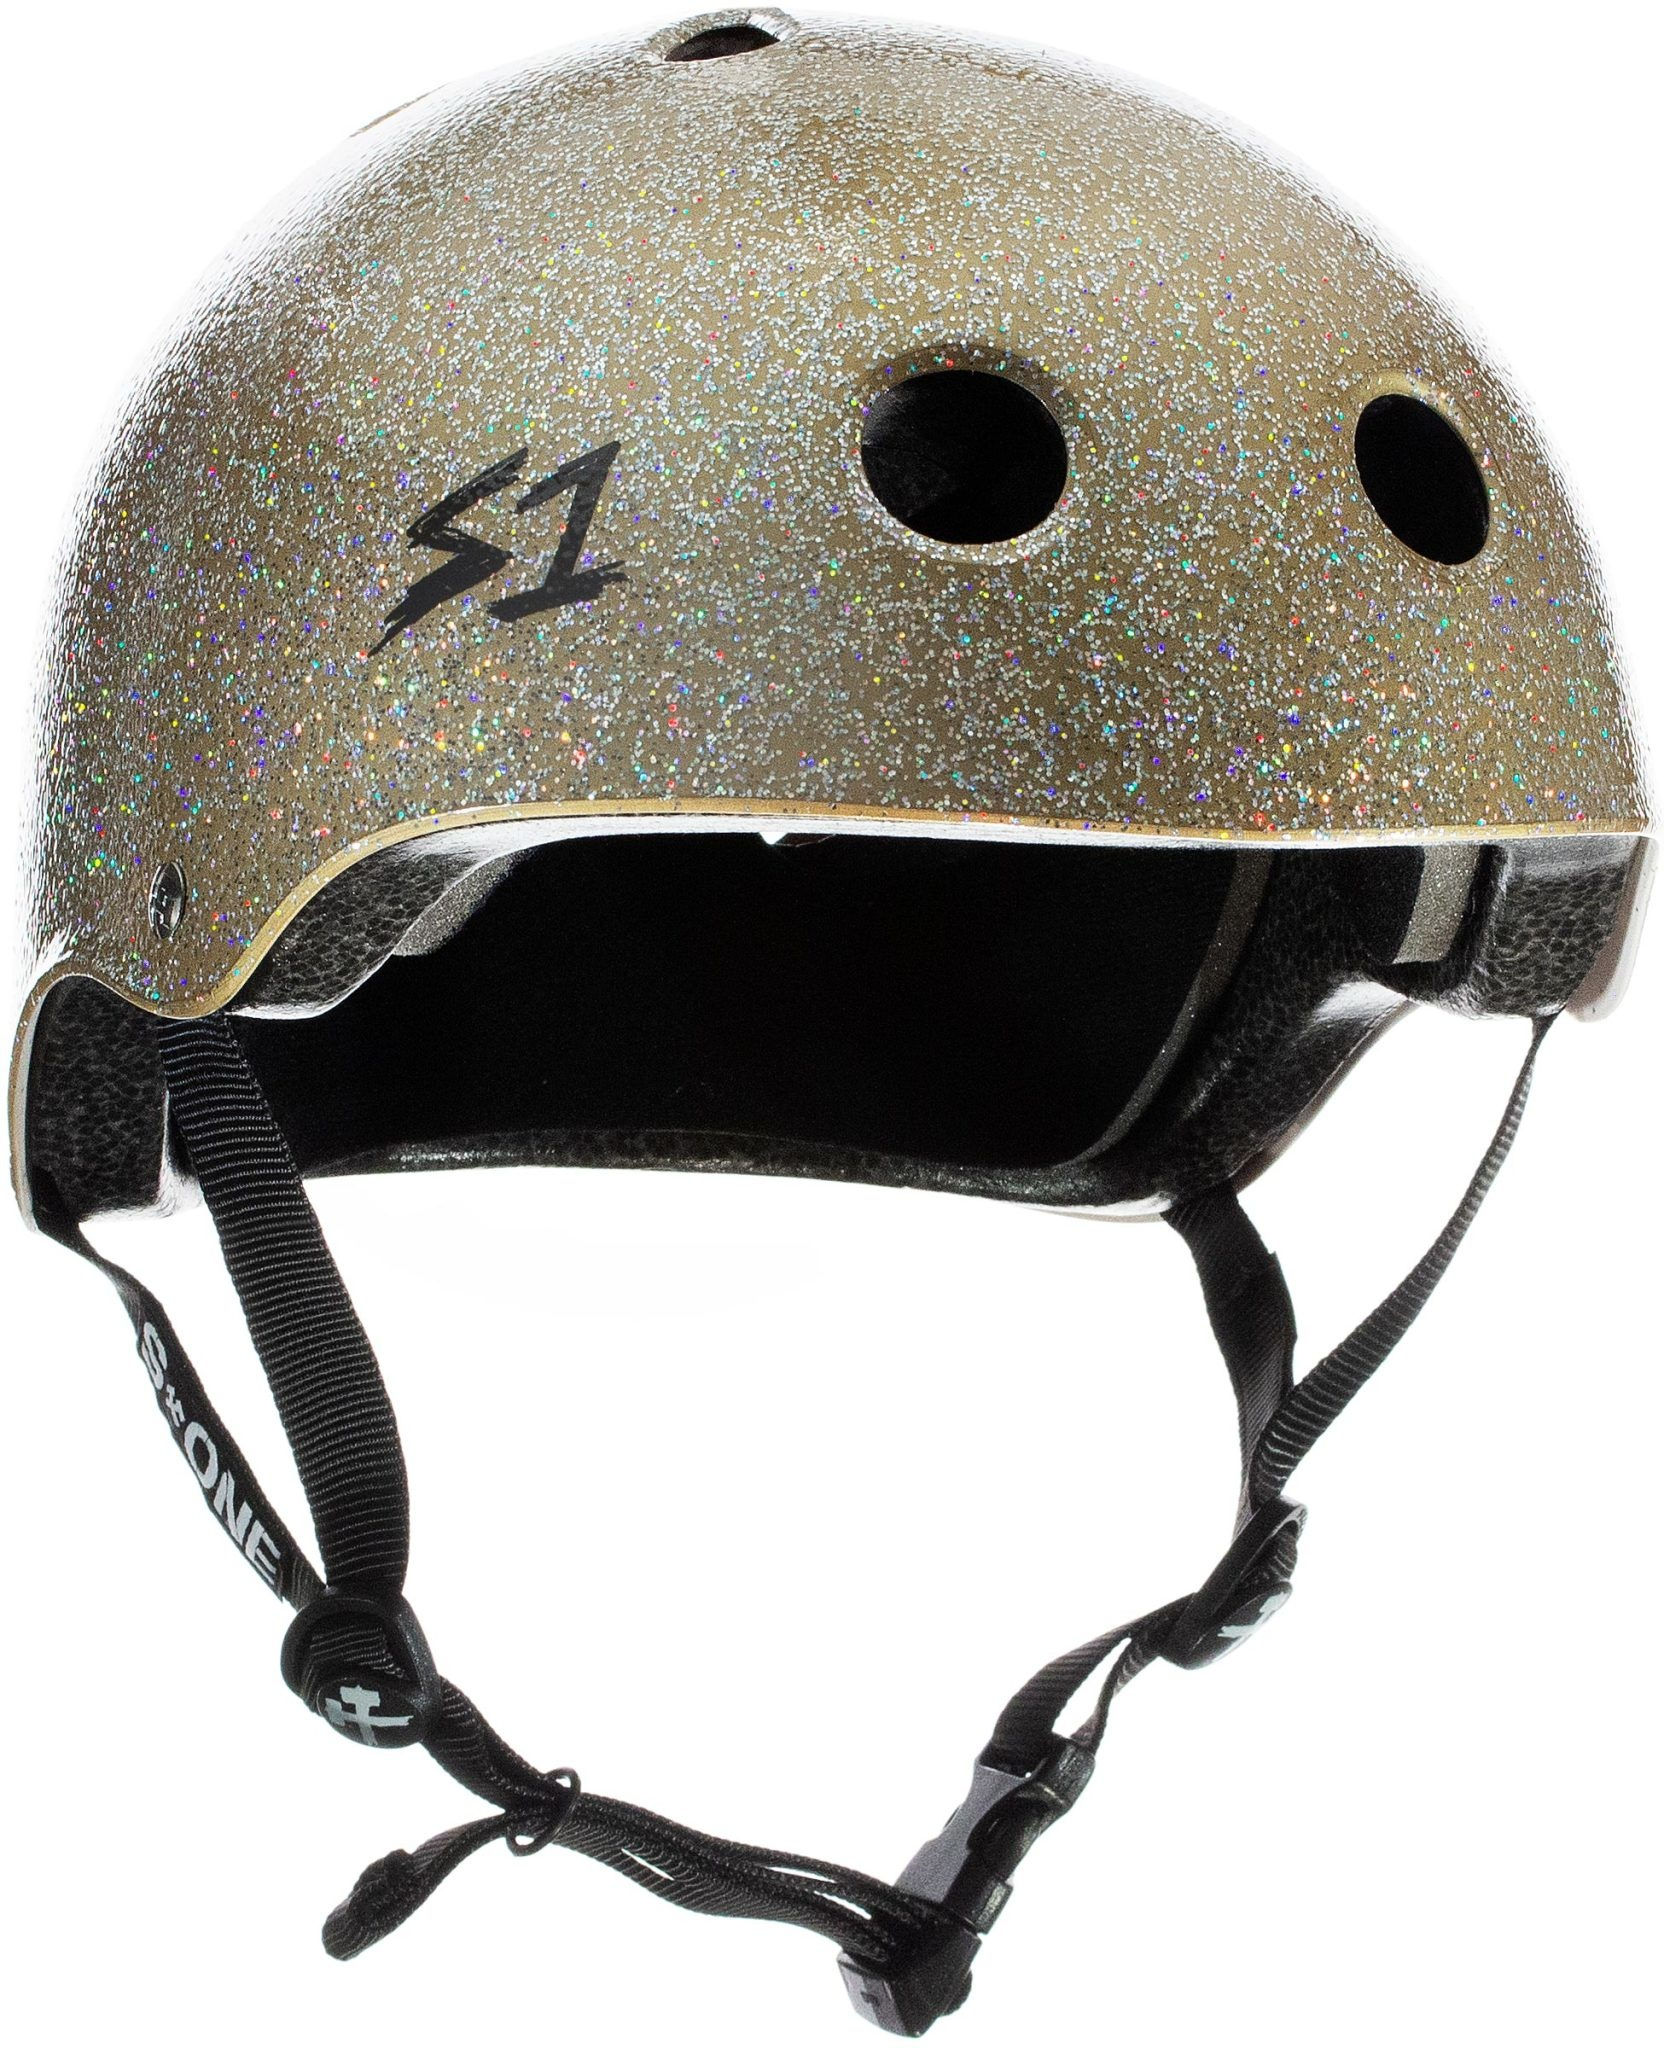 S-1 Lifer Helmet - Gold Glitter